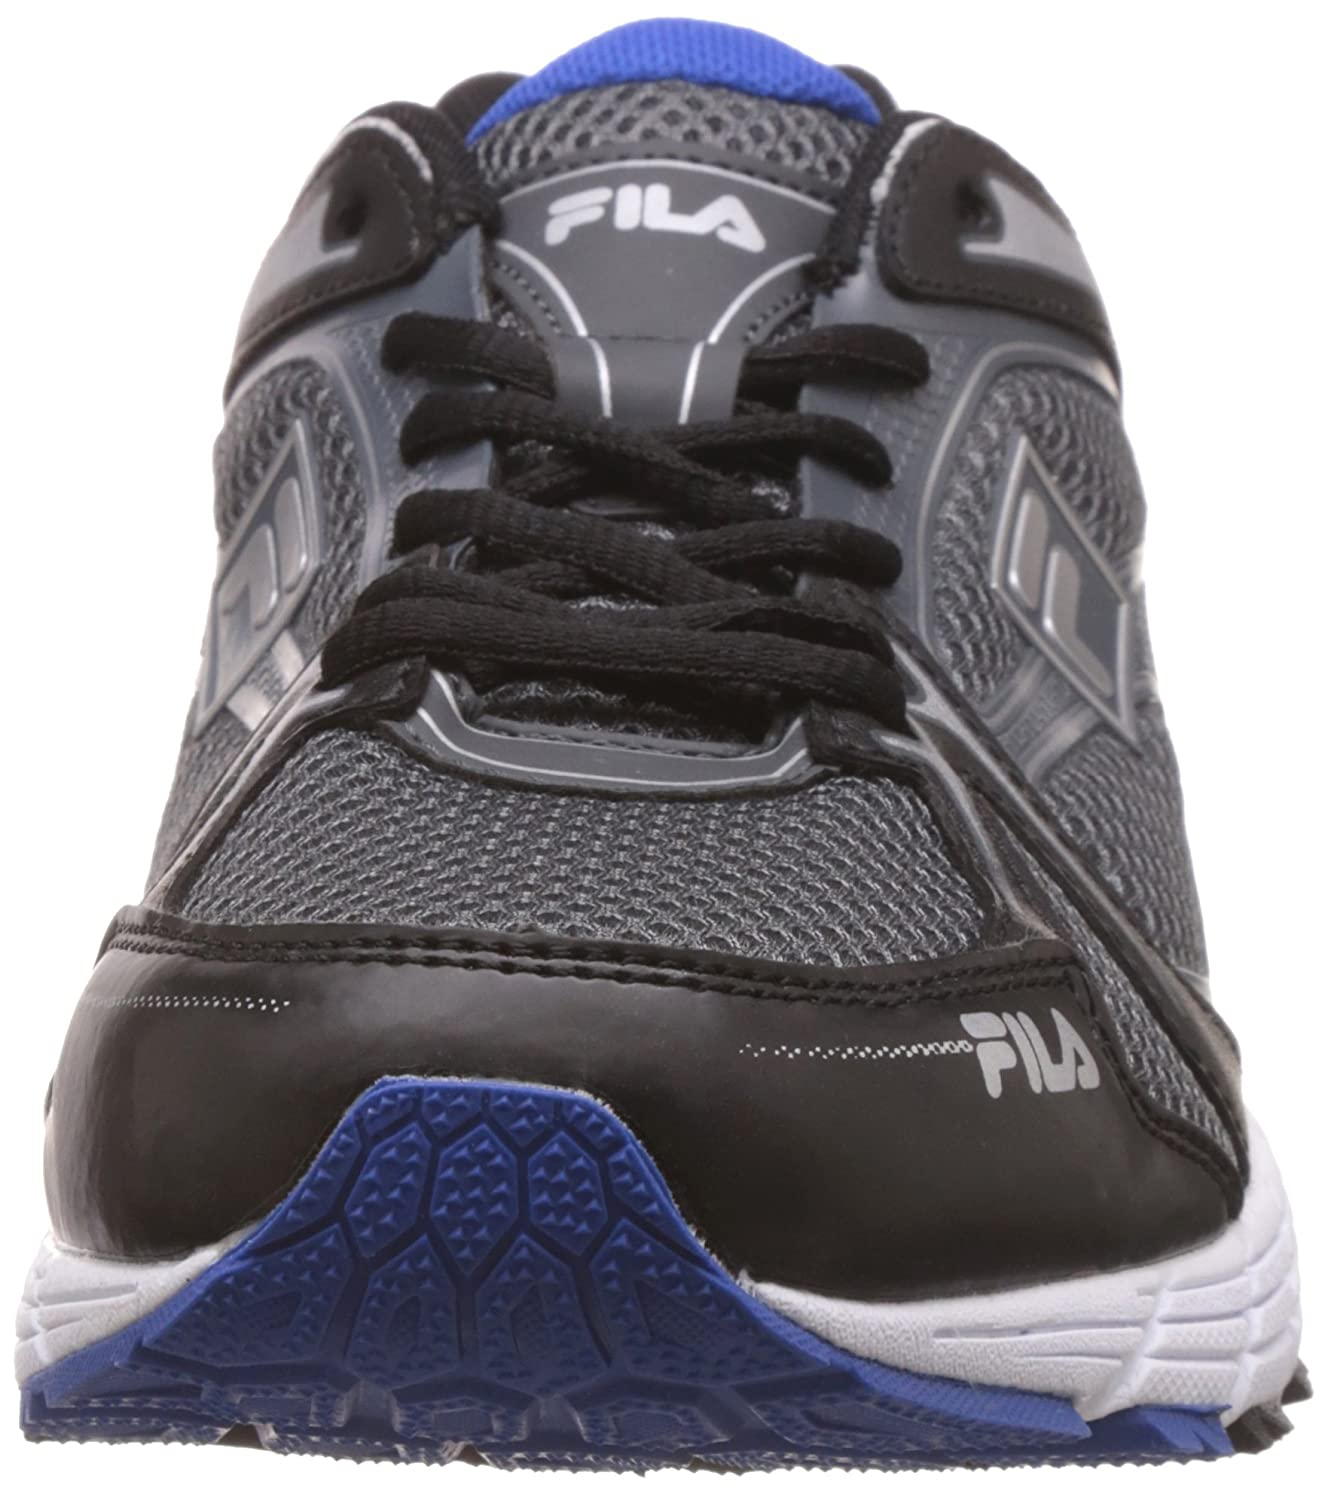 a63a8e22837229 Fila Men s Fly Running Shoes  Buy Online at Low Prices in India - Amazon.in